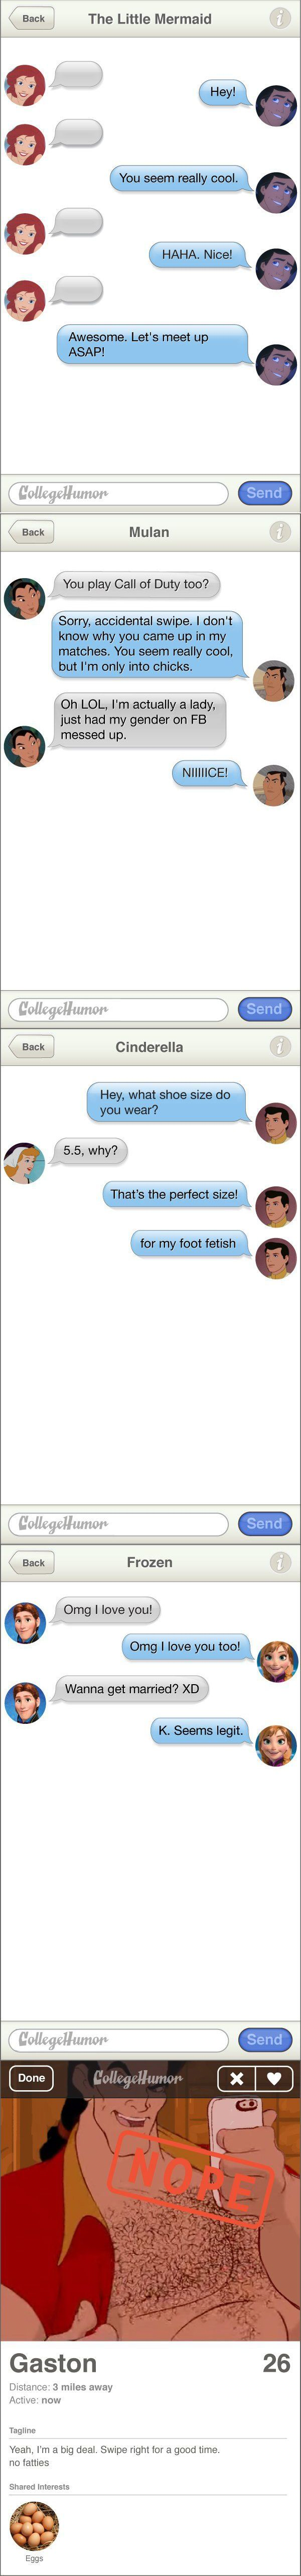 If Disney Princesses Met Their Princes on Tinder. The foot fetish one!